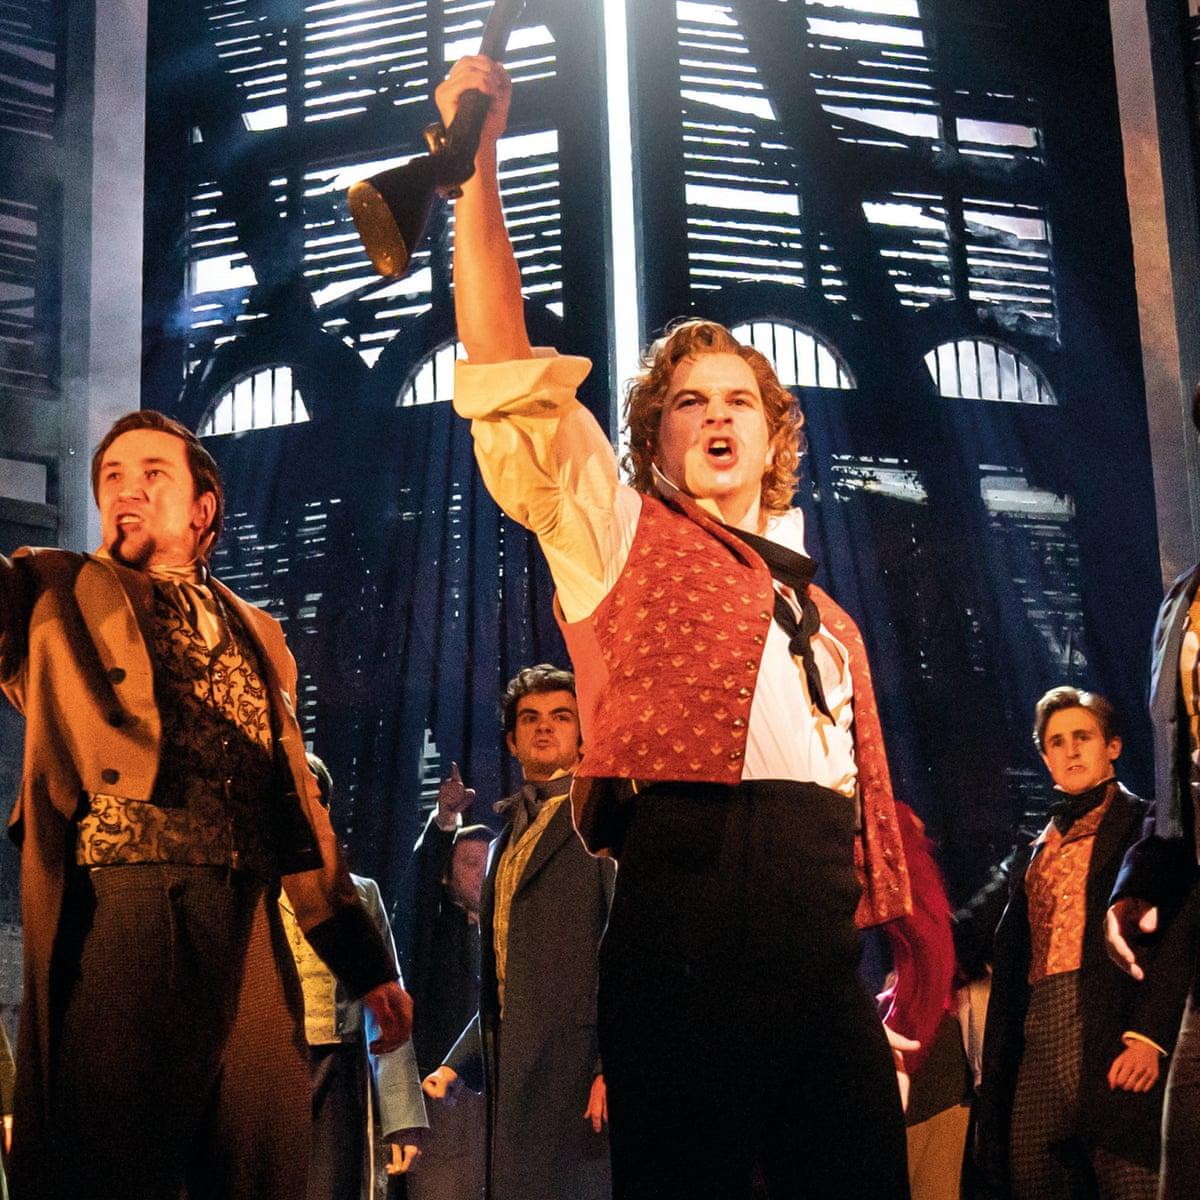 You Still Hear The People Sing Les Mis Protest Anthem Blazes From France To China Musicals The Guardian